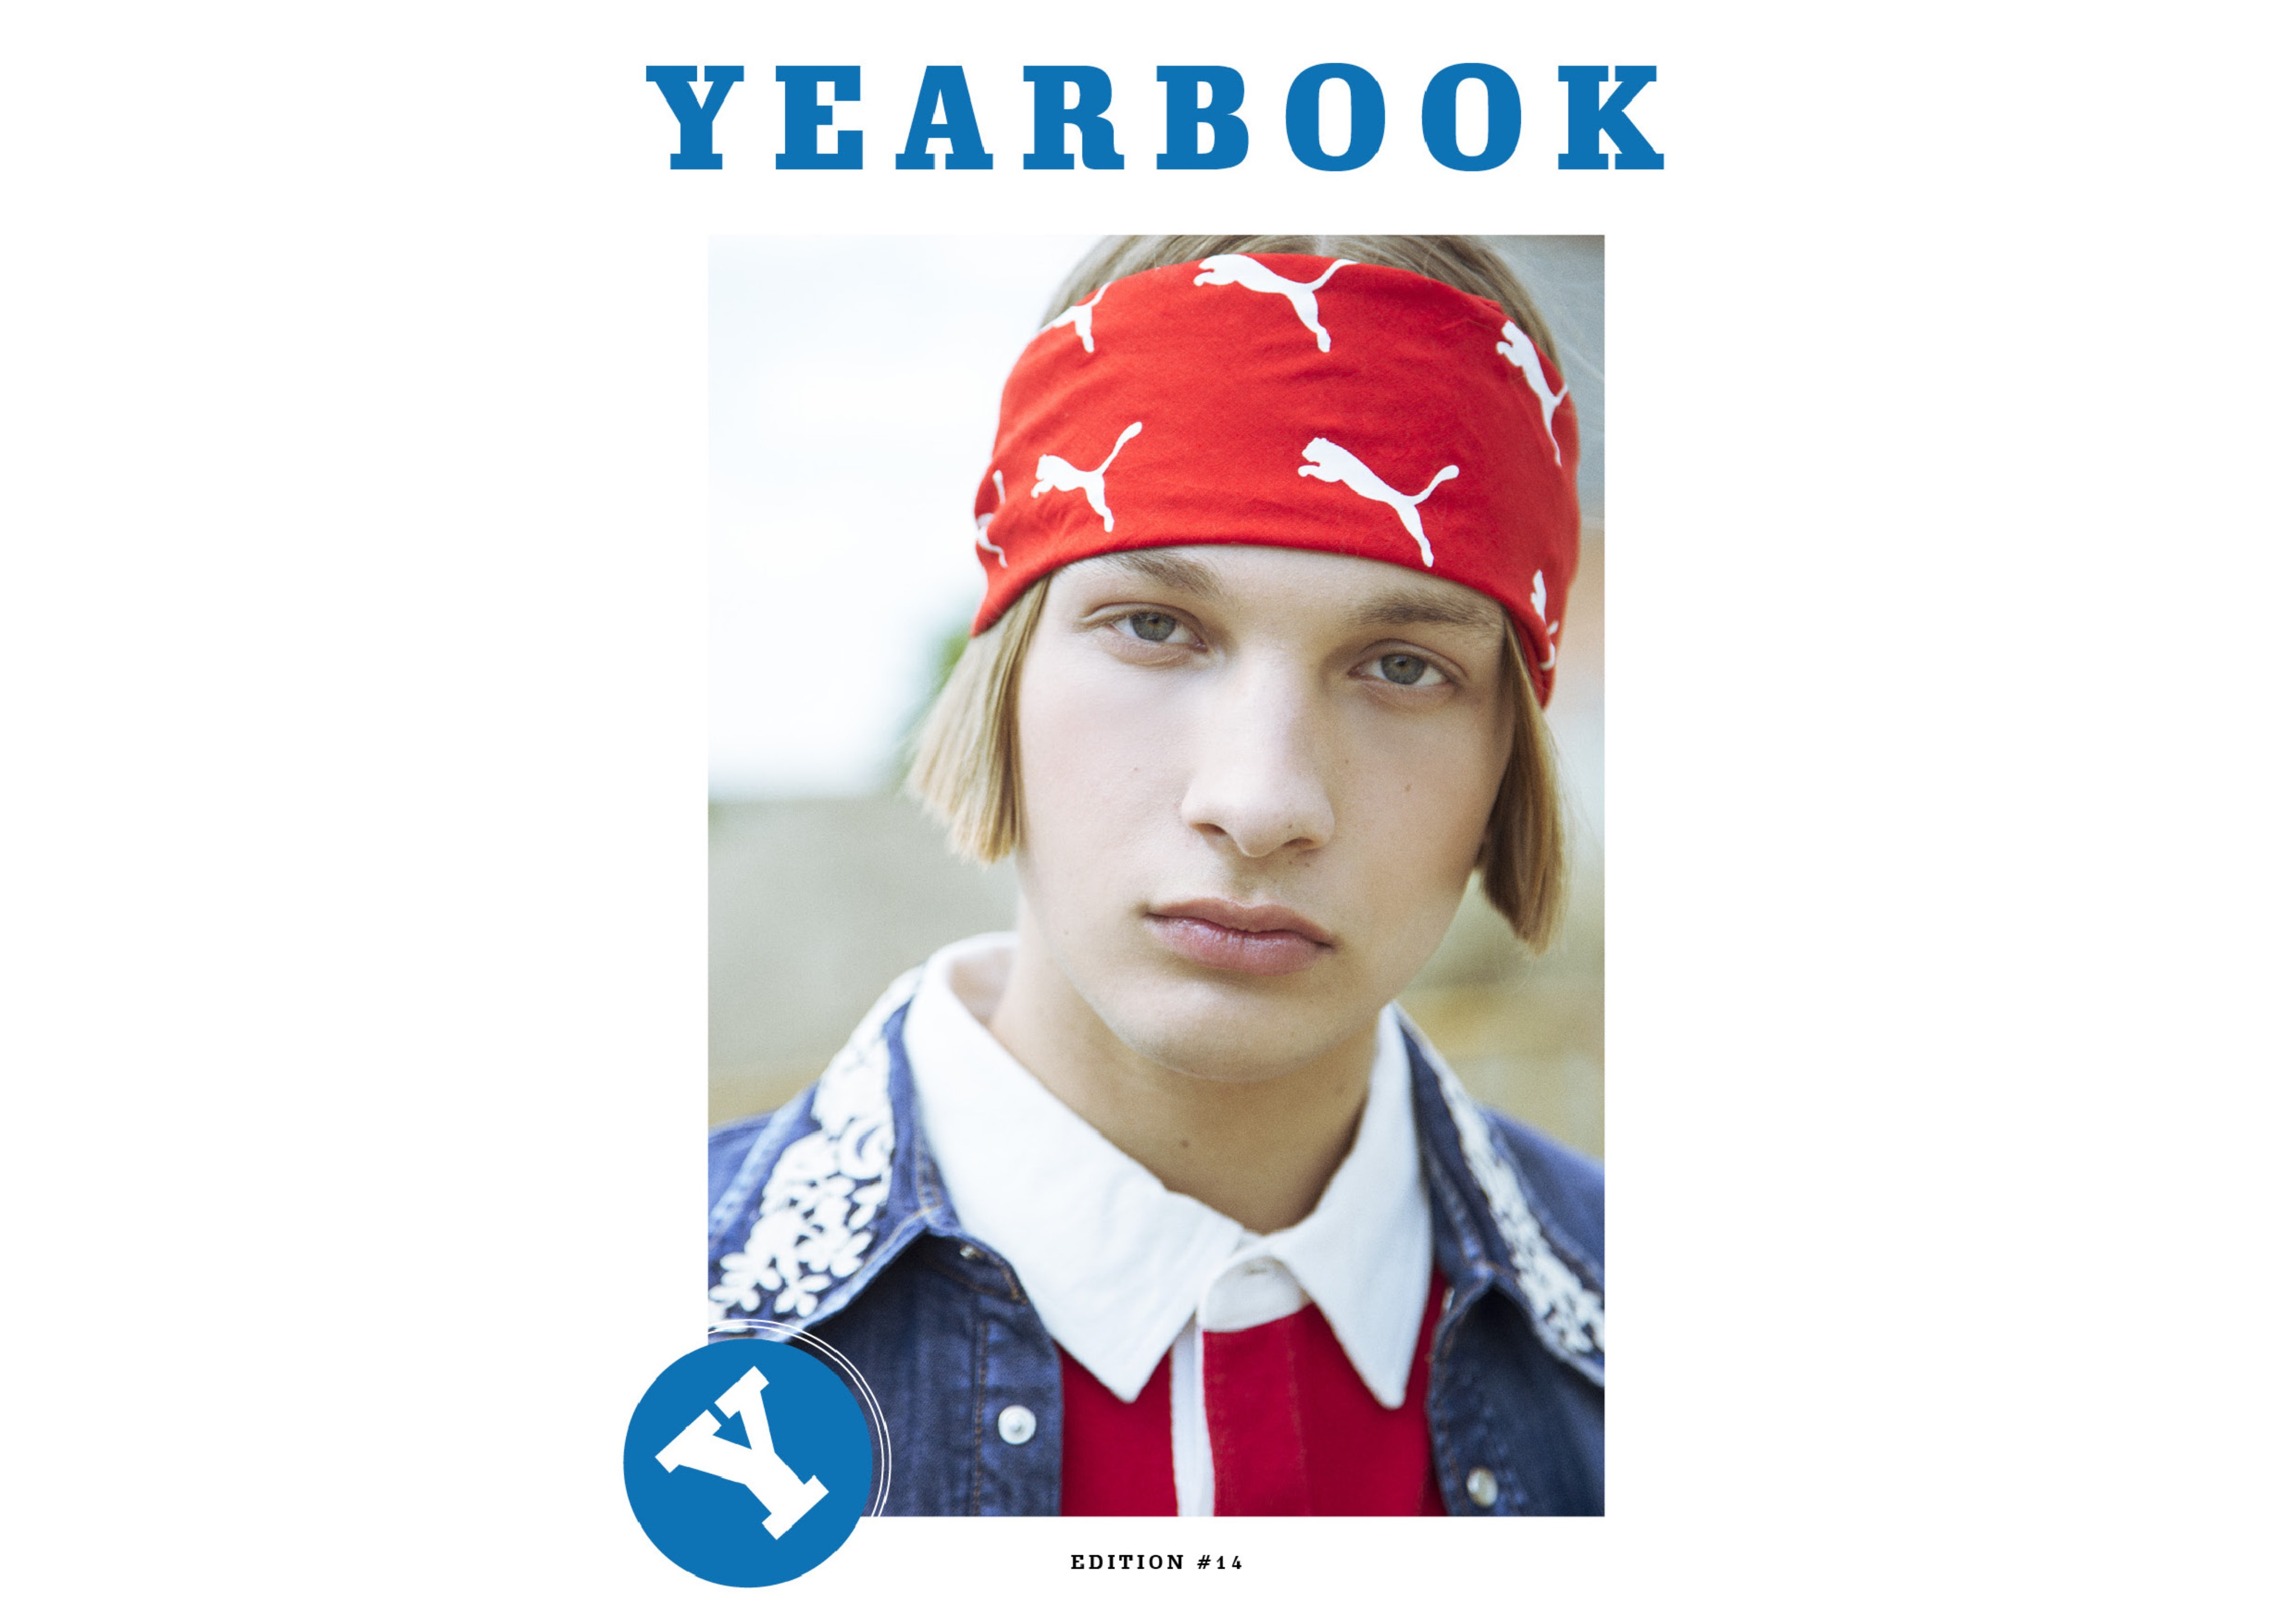 Yearbook Fanzine #14 (Digital Edition)